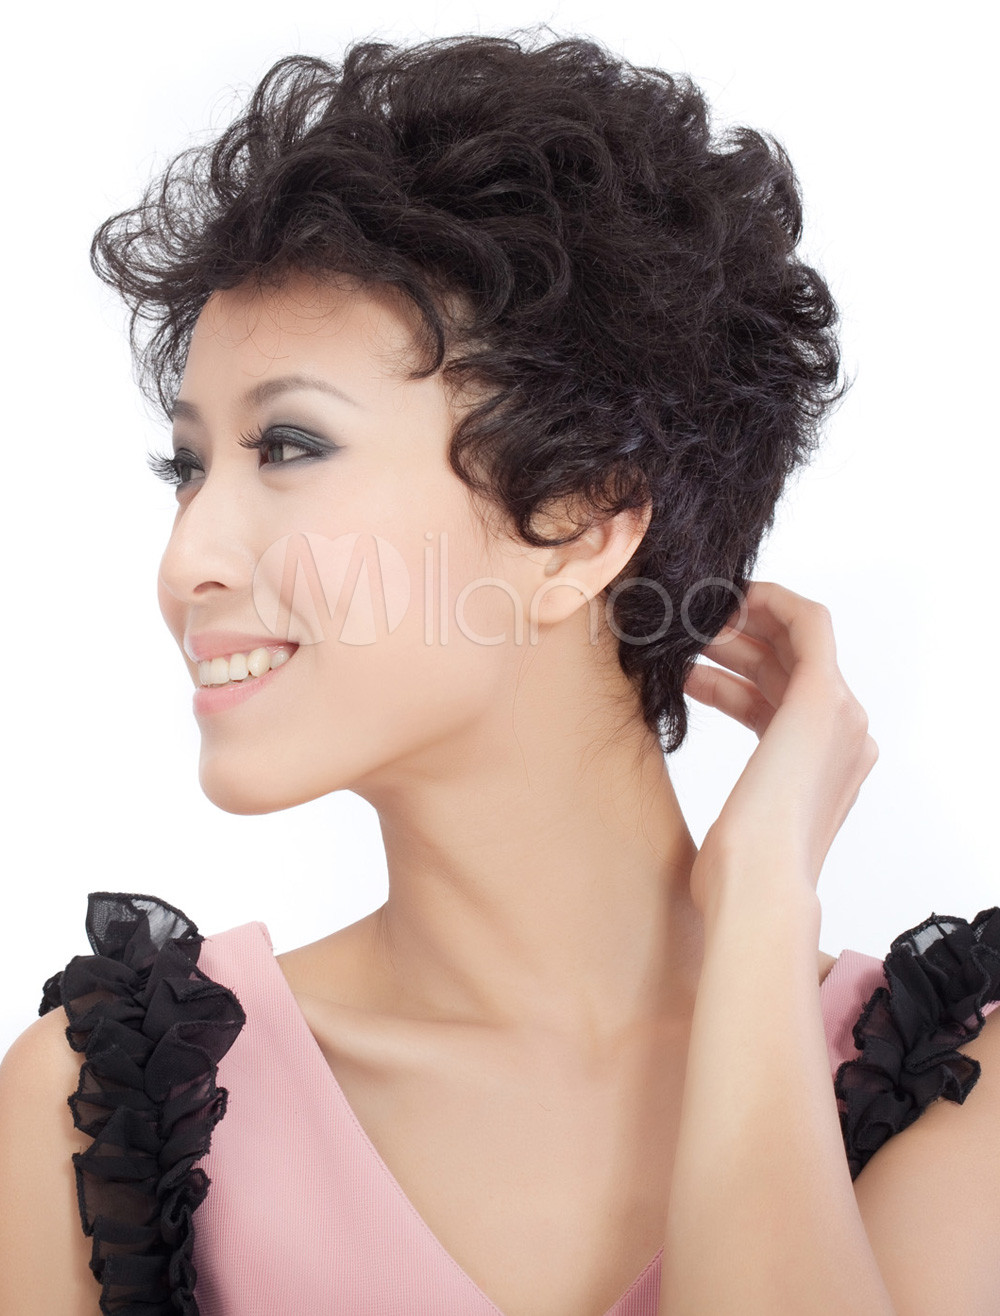 Fine Short Curly Black Wig All About Wigs Short Hairstyles For Black Women Fulllsitofus